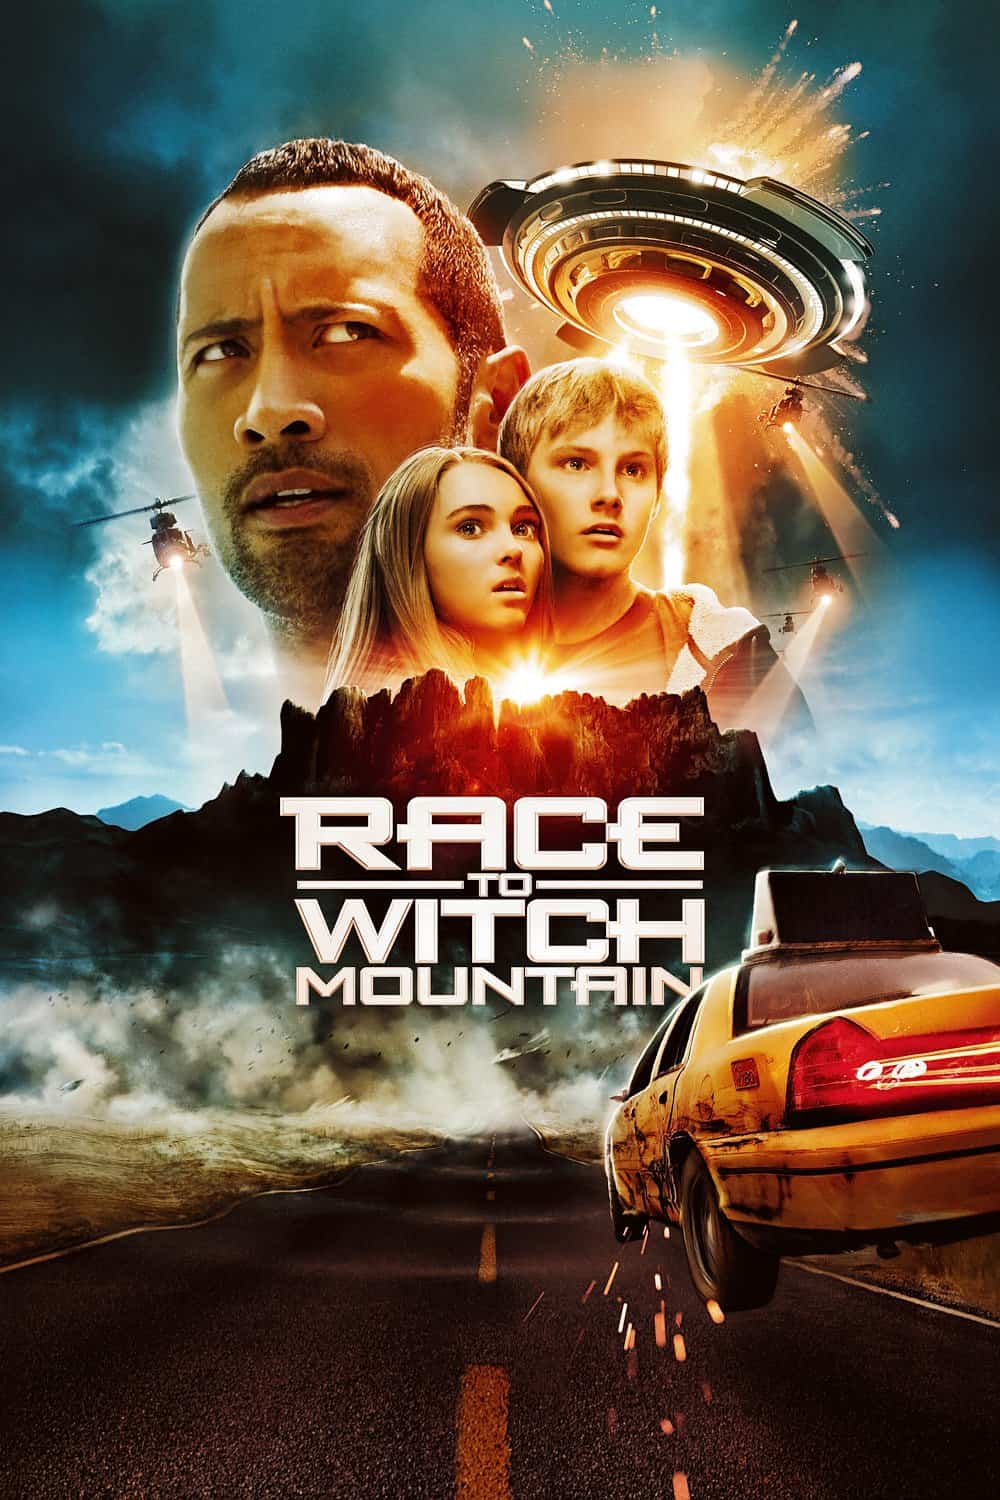 Race to Witch Mountain, 2009